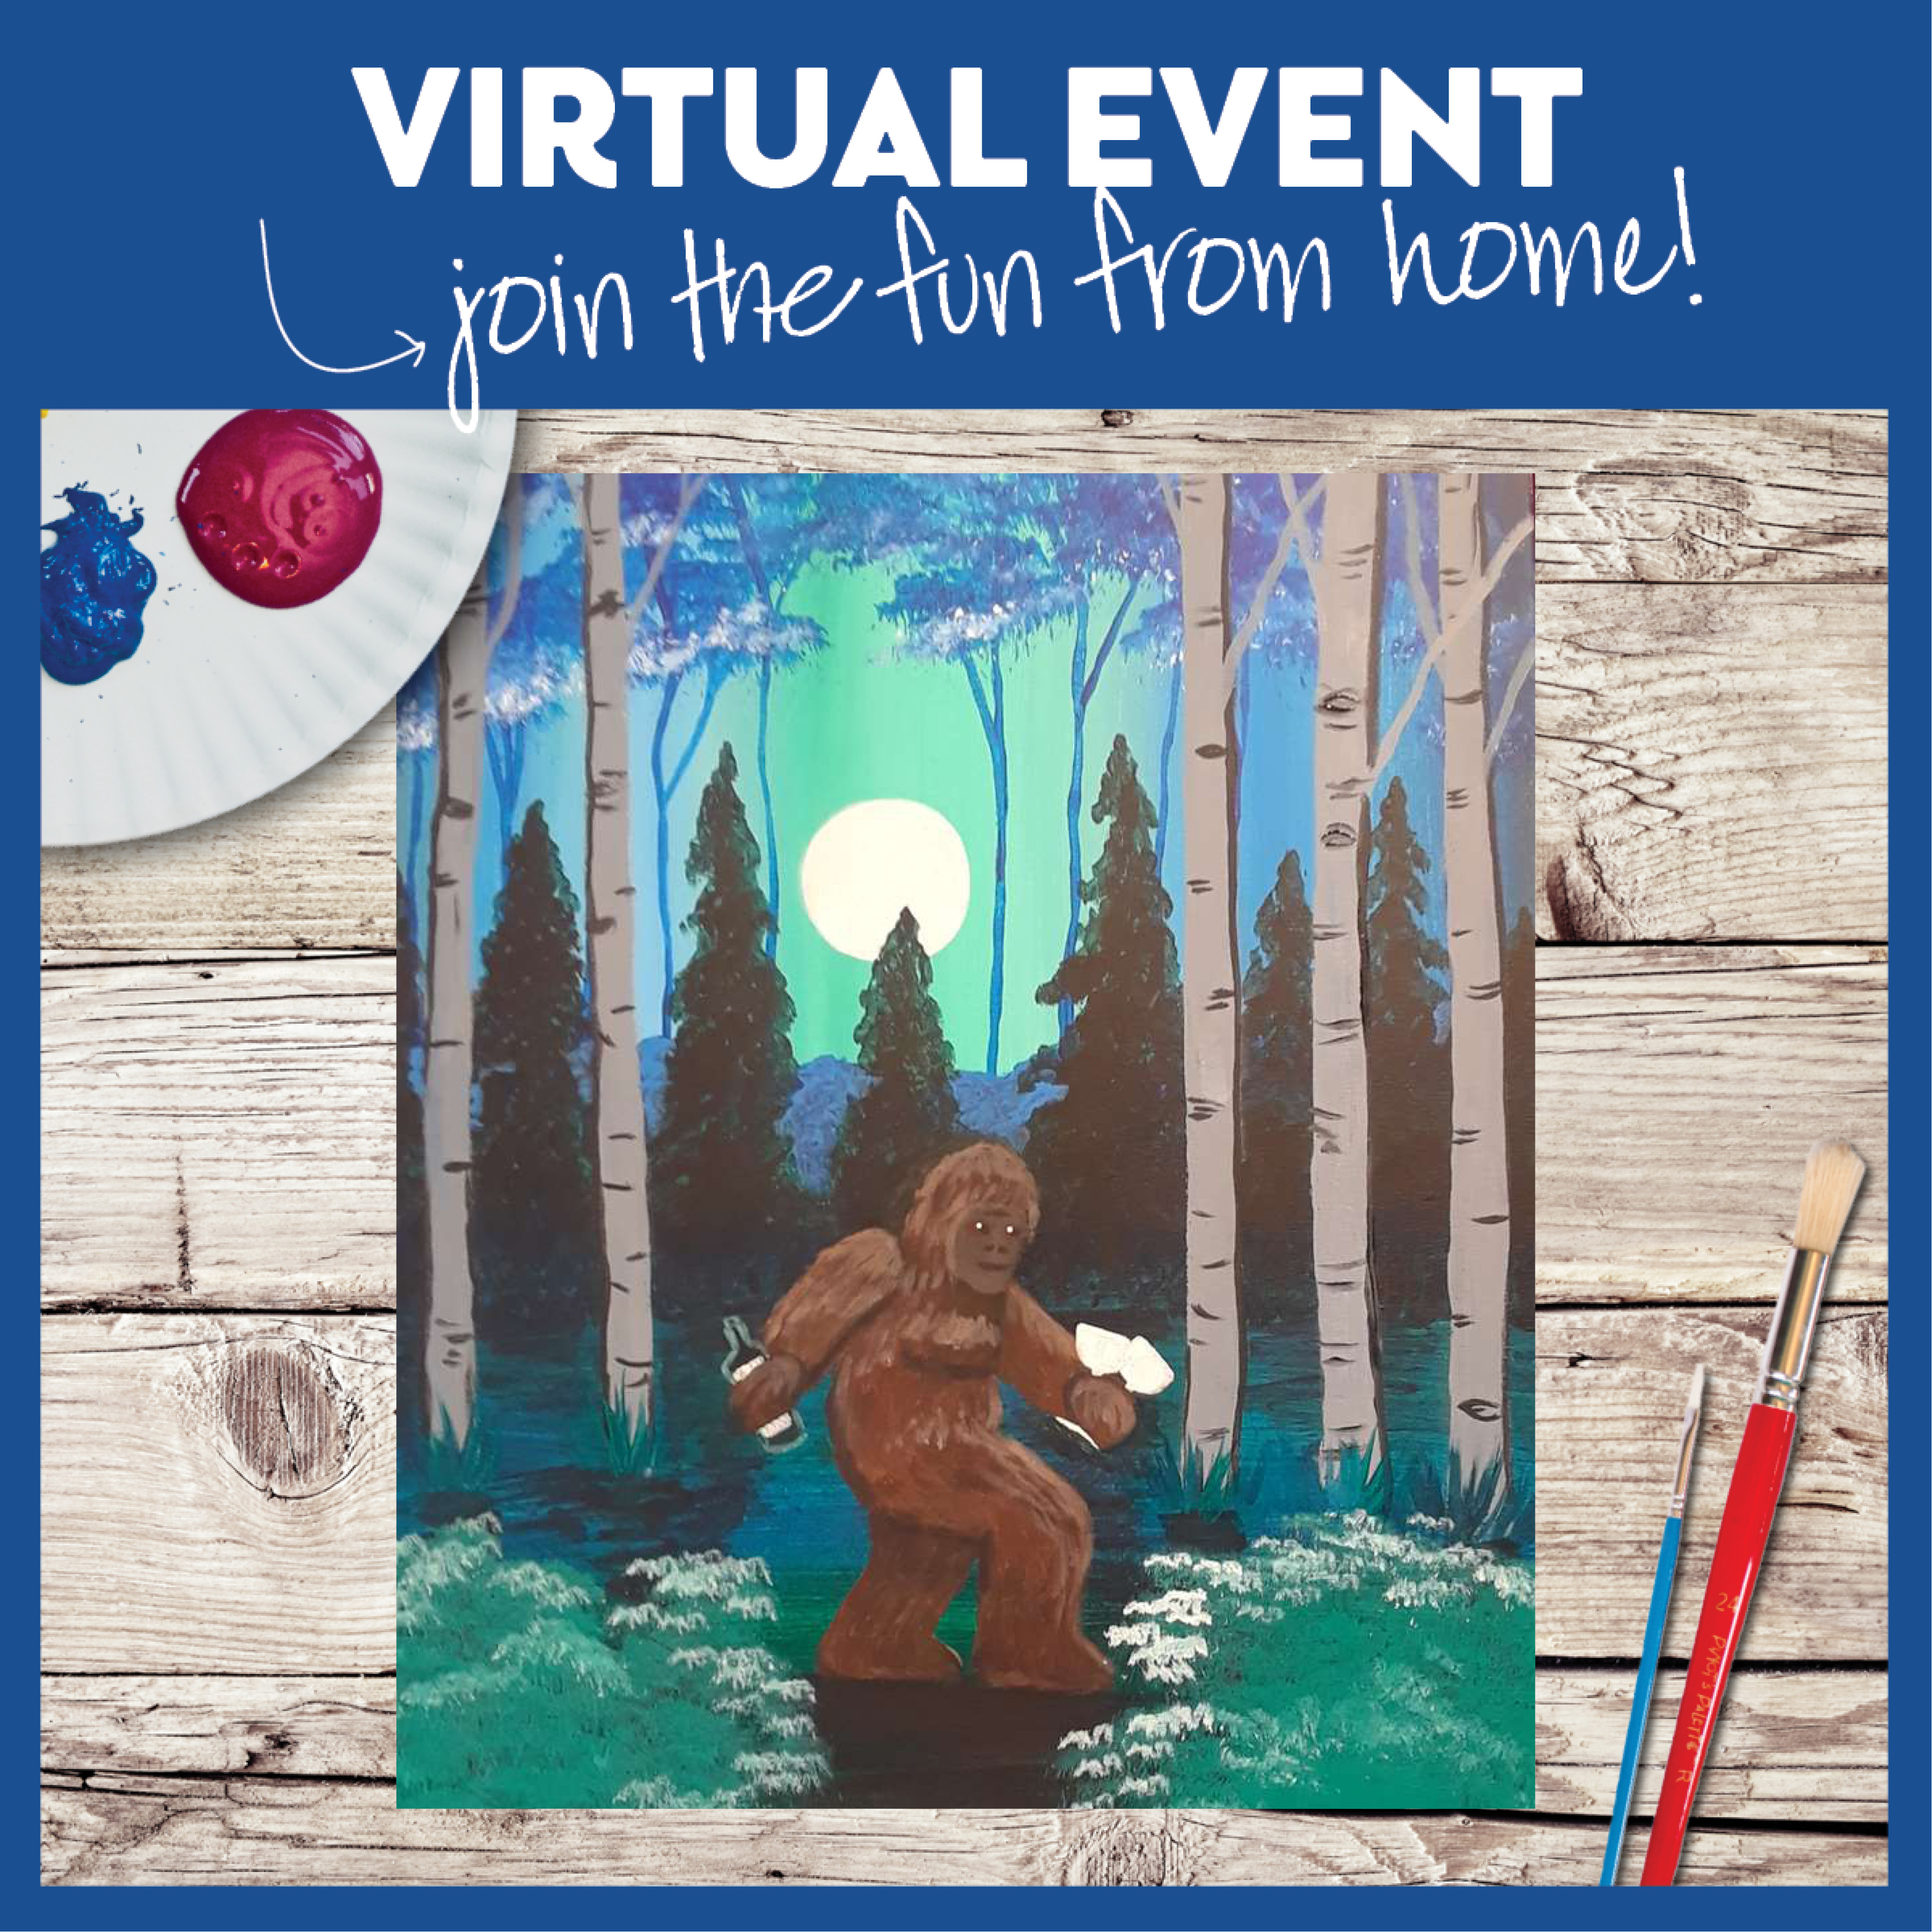 LIVE VIRTUAL CLASS: WINO SASQUATCH - WITH ART KIT OR PROVIDE YOUR OWN SUPPLIES